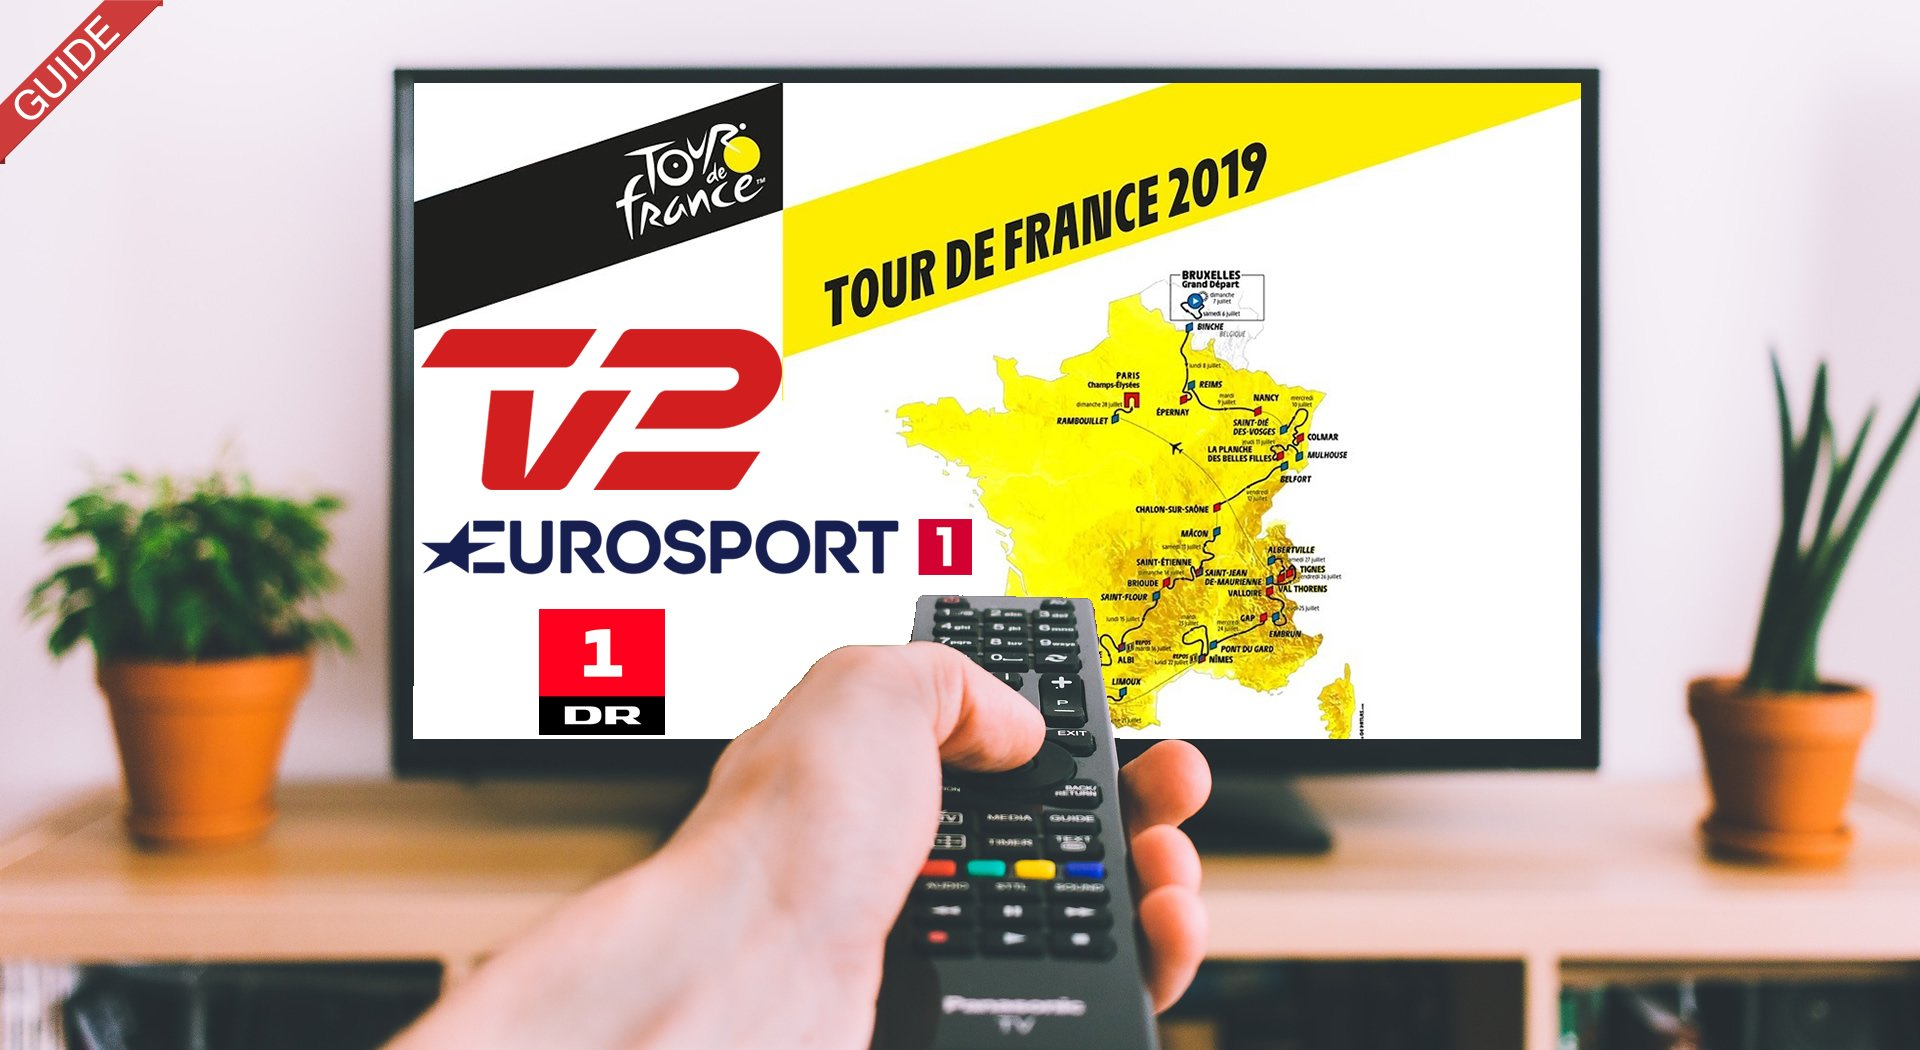 Tour de France 2019 på TV og Streaming